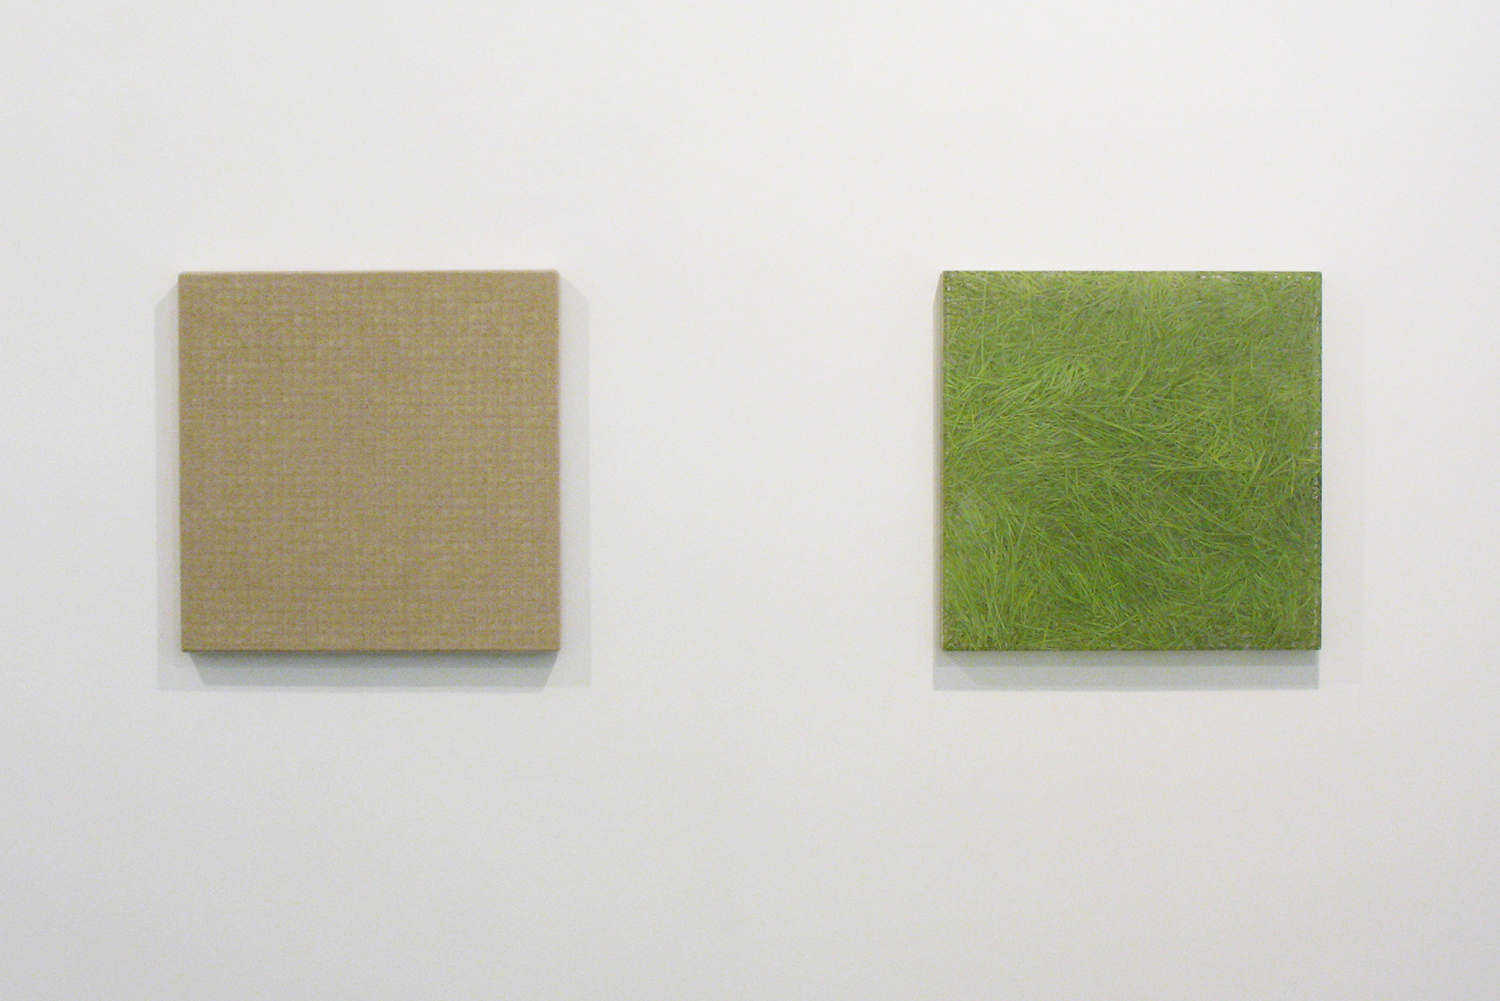 Hemp-square series|acrylic on canvas|42.5 x 42.5 cm|2008 (left)<br>Photo painting-bush 叢|oil on polyester resin panel and mixed media|42.5 x 42.5 cm|2008 (right)